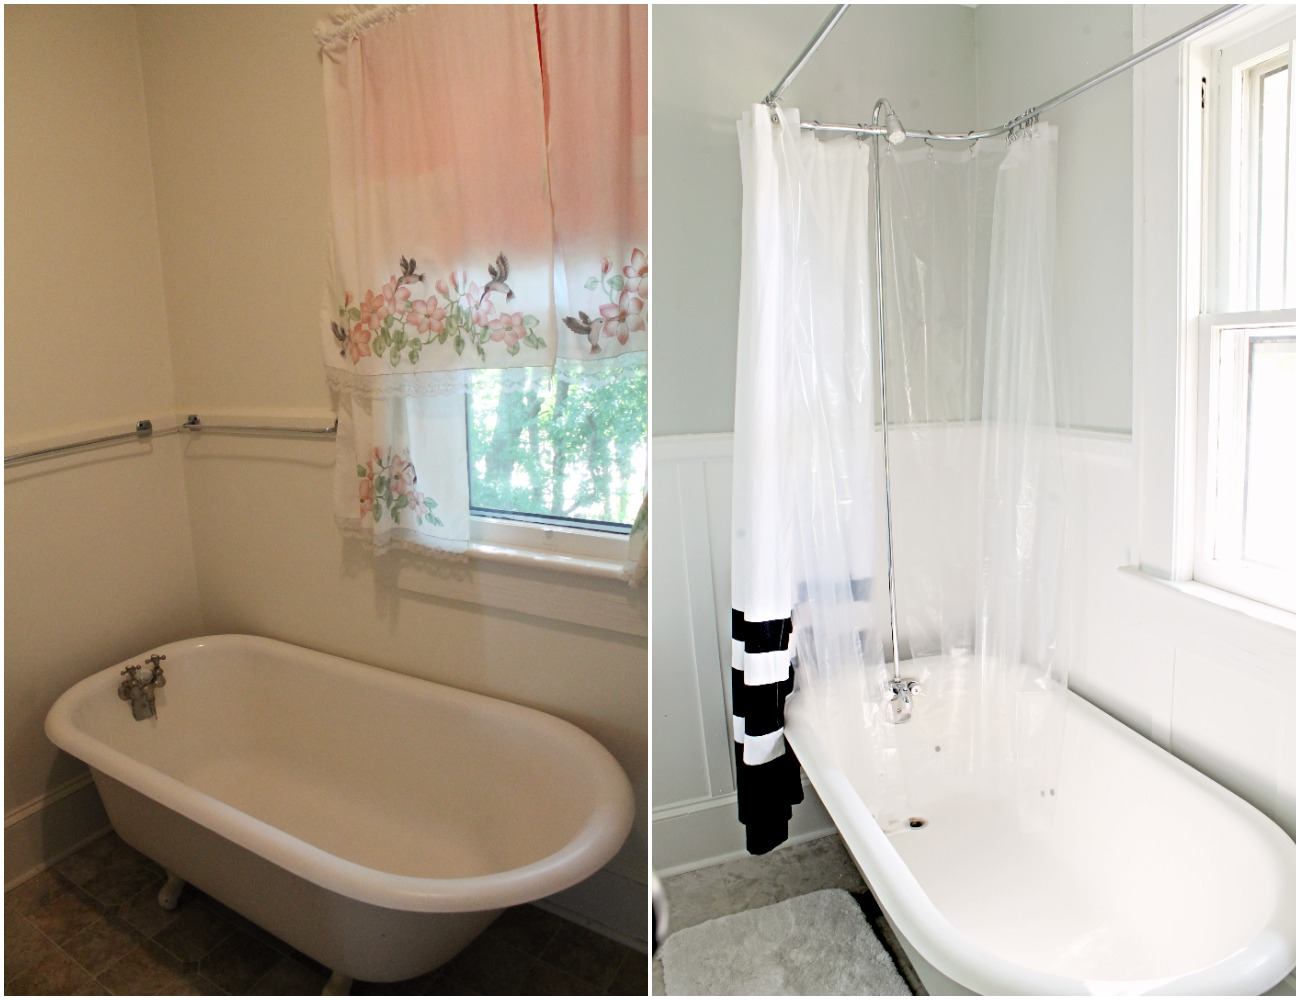 House Flipping Before and After - DIY BUDGET BATHROOM IDEAS (5).jpg